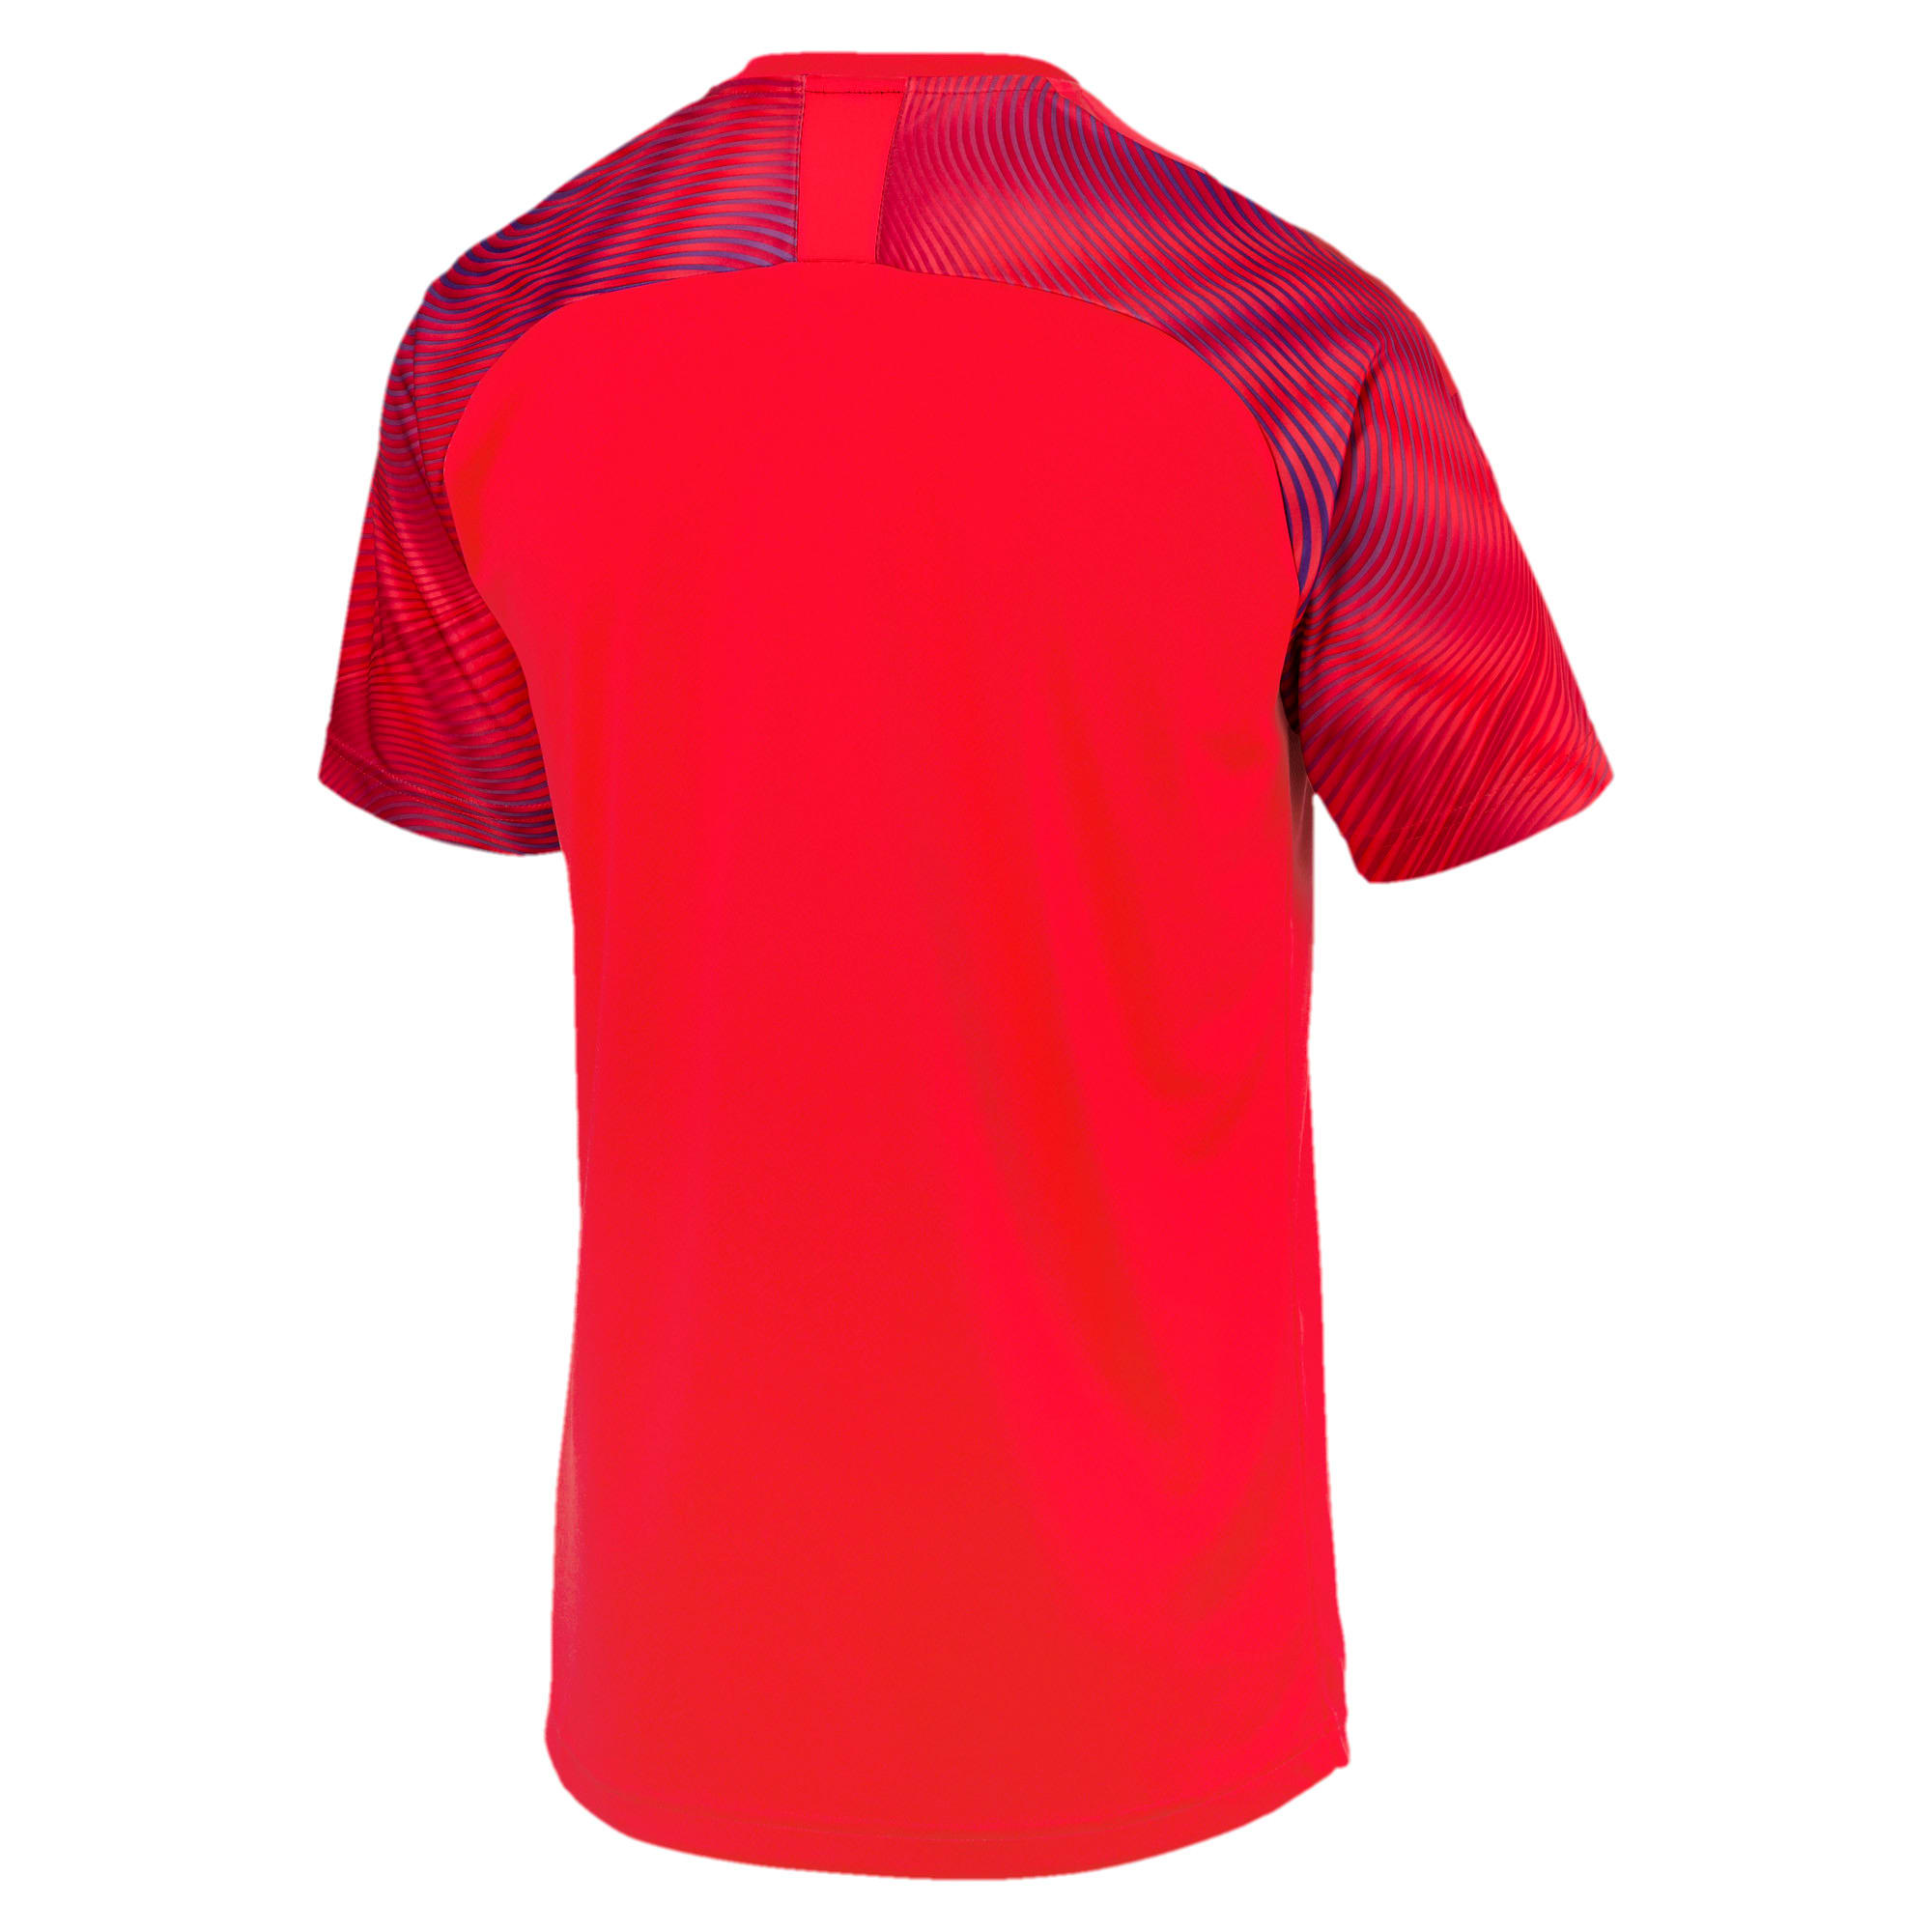 Thumbnail 5 of CUP Men's Football Jersey, Puma Red-Puma White, medium